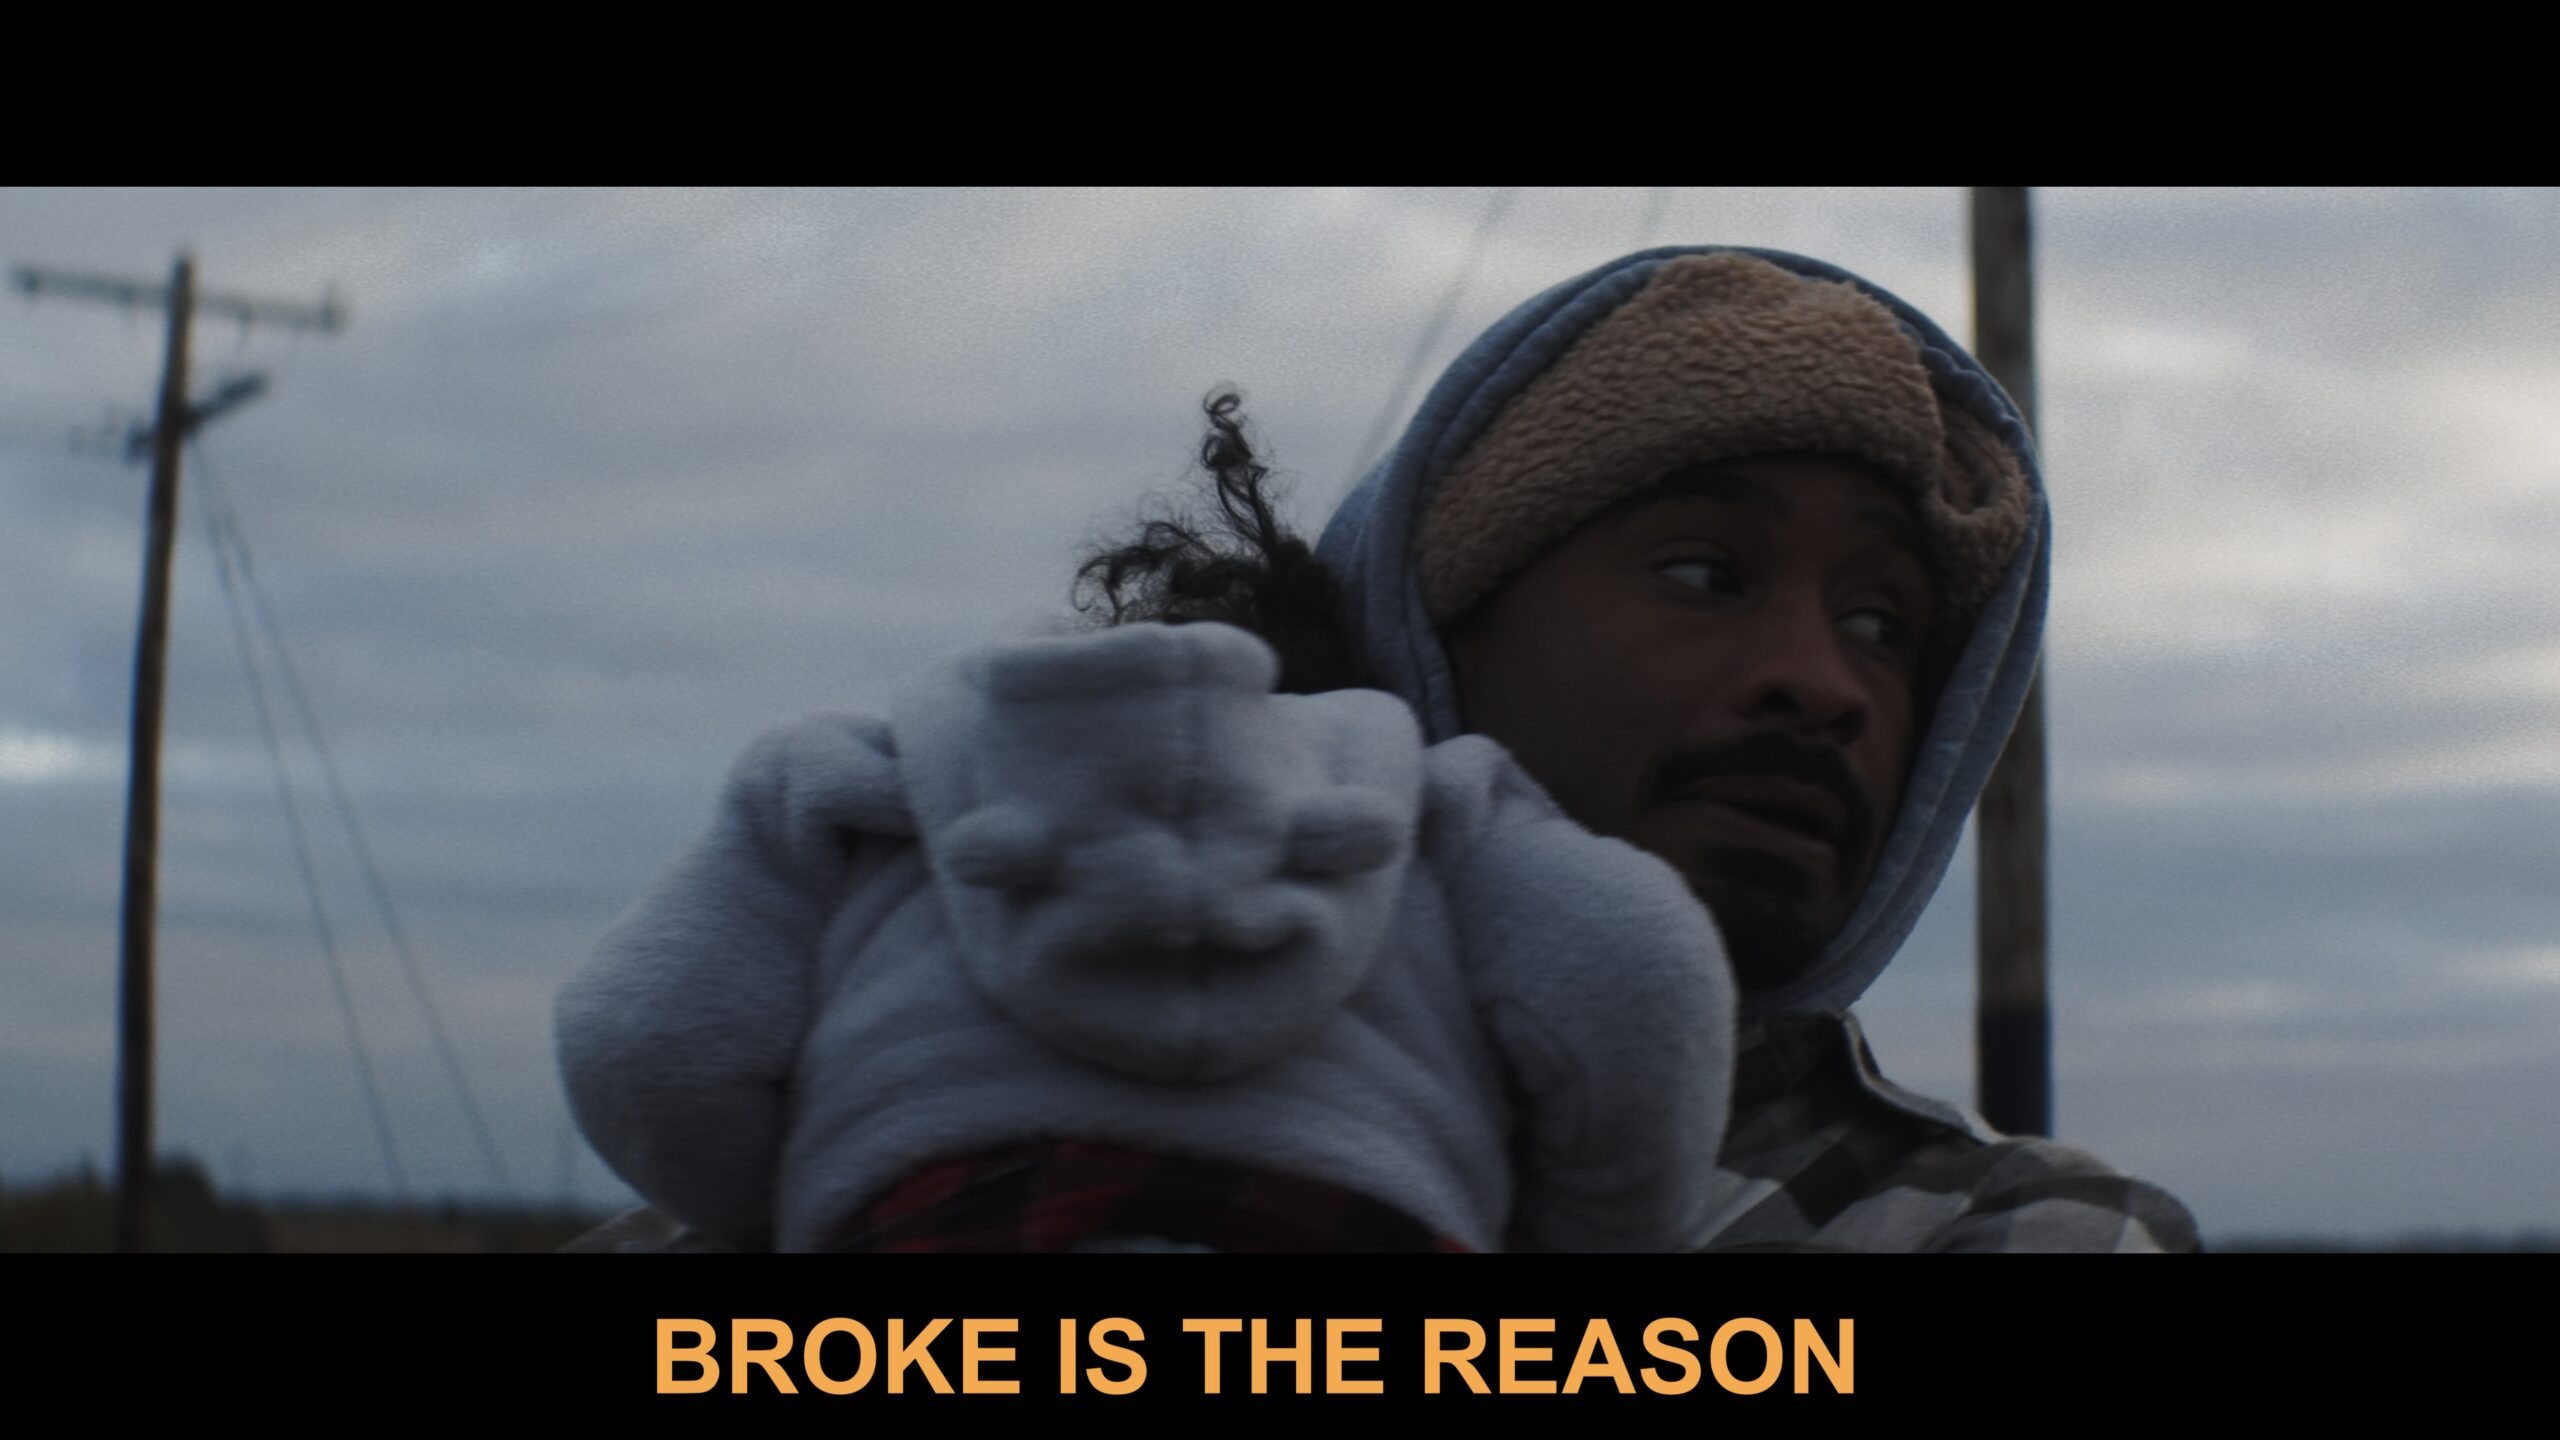 https://bffno.com/wp-content/uploads/2021/03/Broke-is-the-Reason-Cover-Photo-scaled.jpg